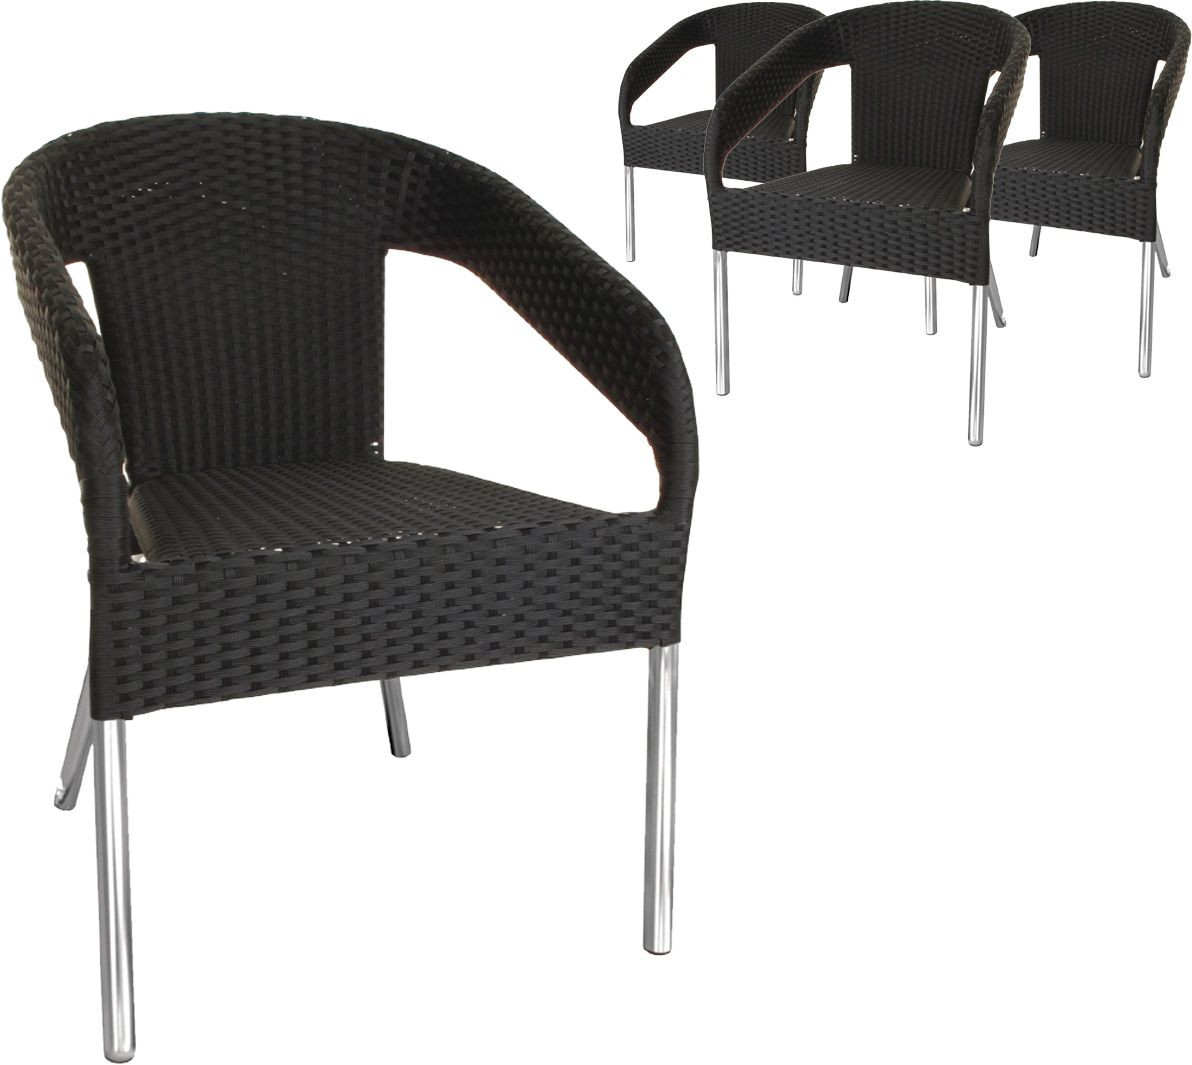 lot de 4 chaises de jardin en osier empilables coloris gris anthracite 30